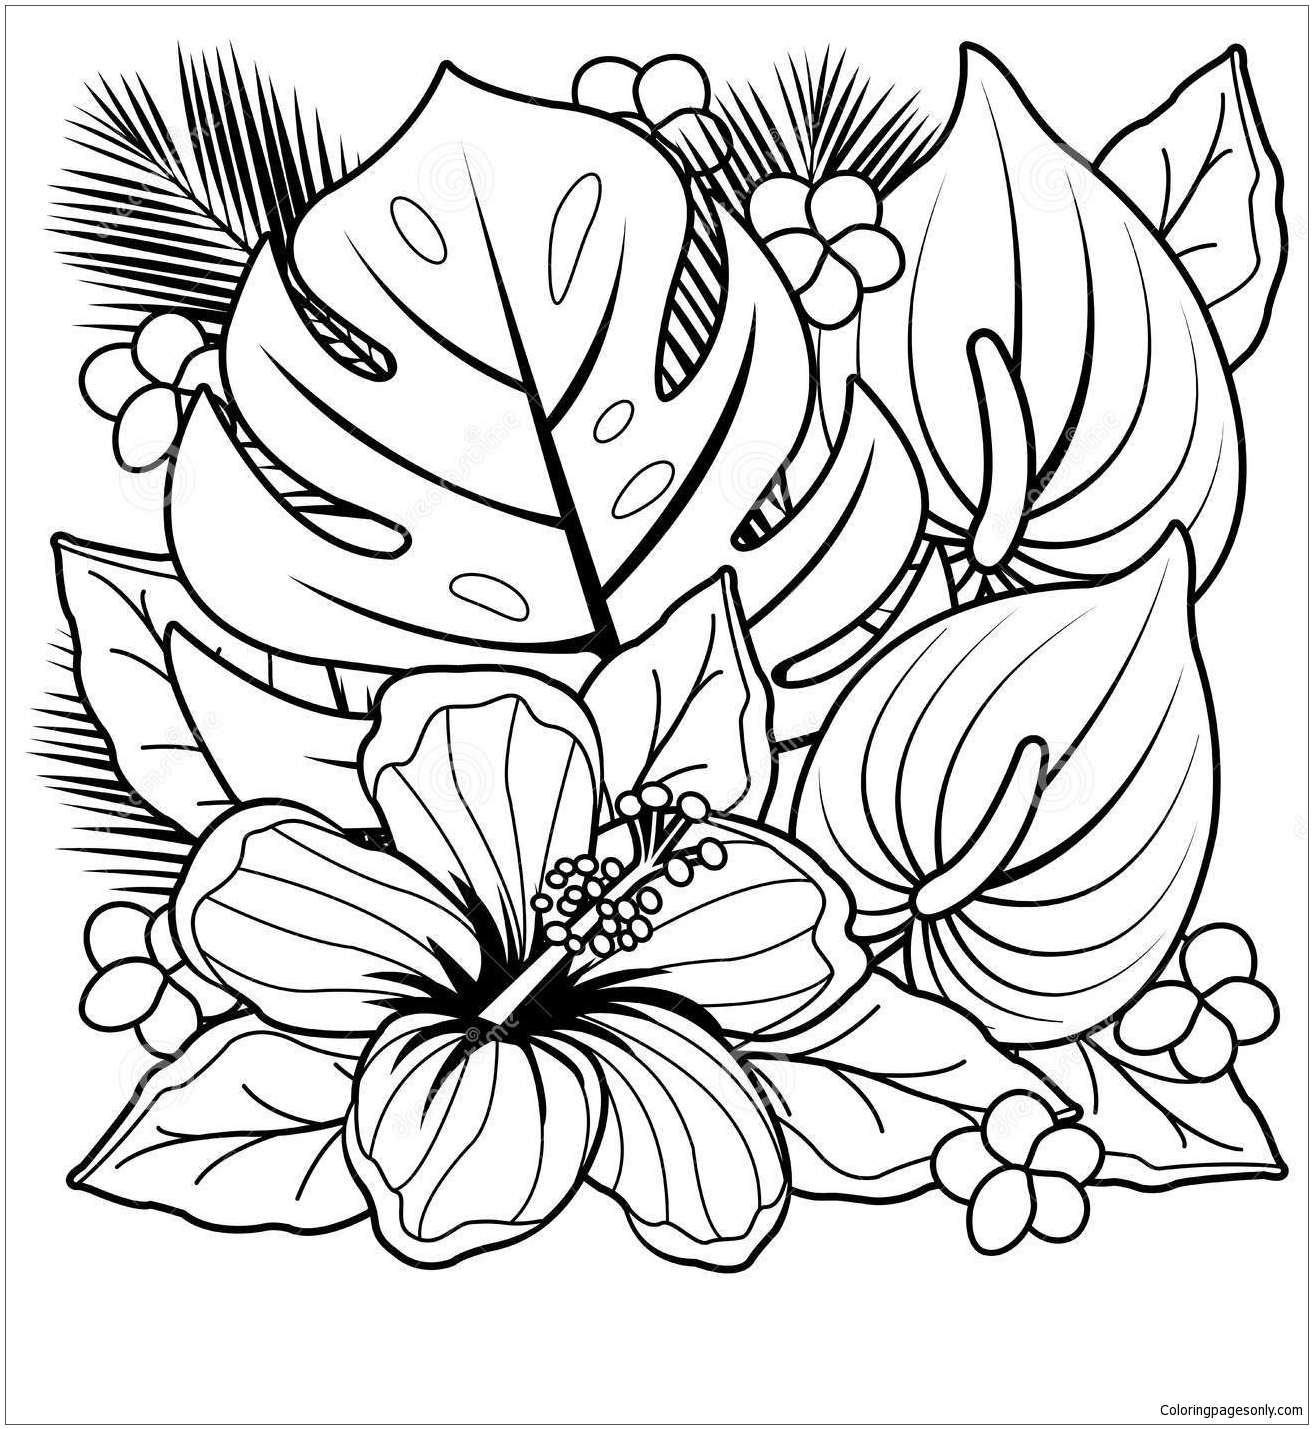 tropical plants and hibiscus flowers coloring flower for kids adults plant flowers00 coloring pages Plant Coloring Page